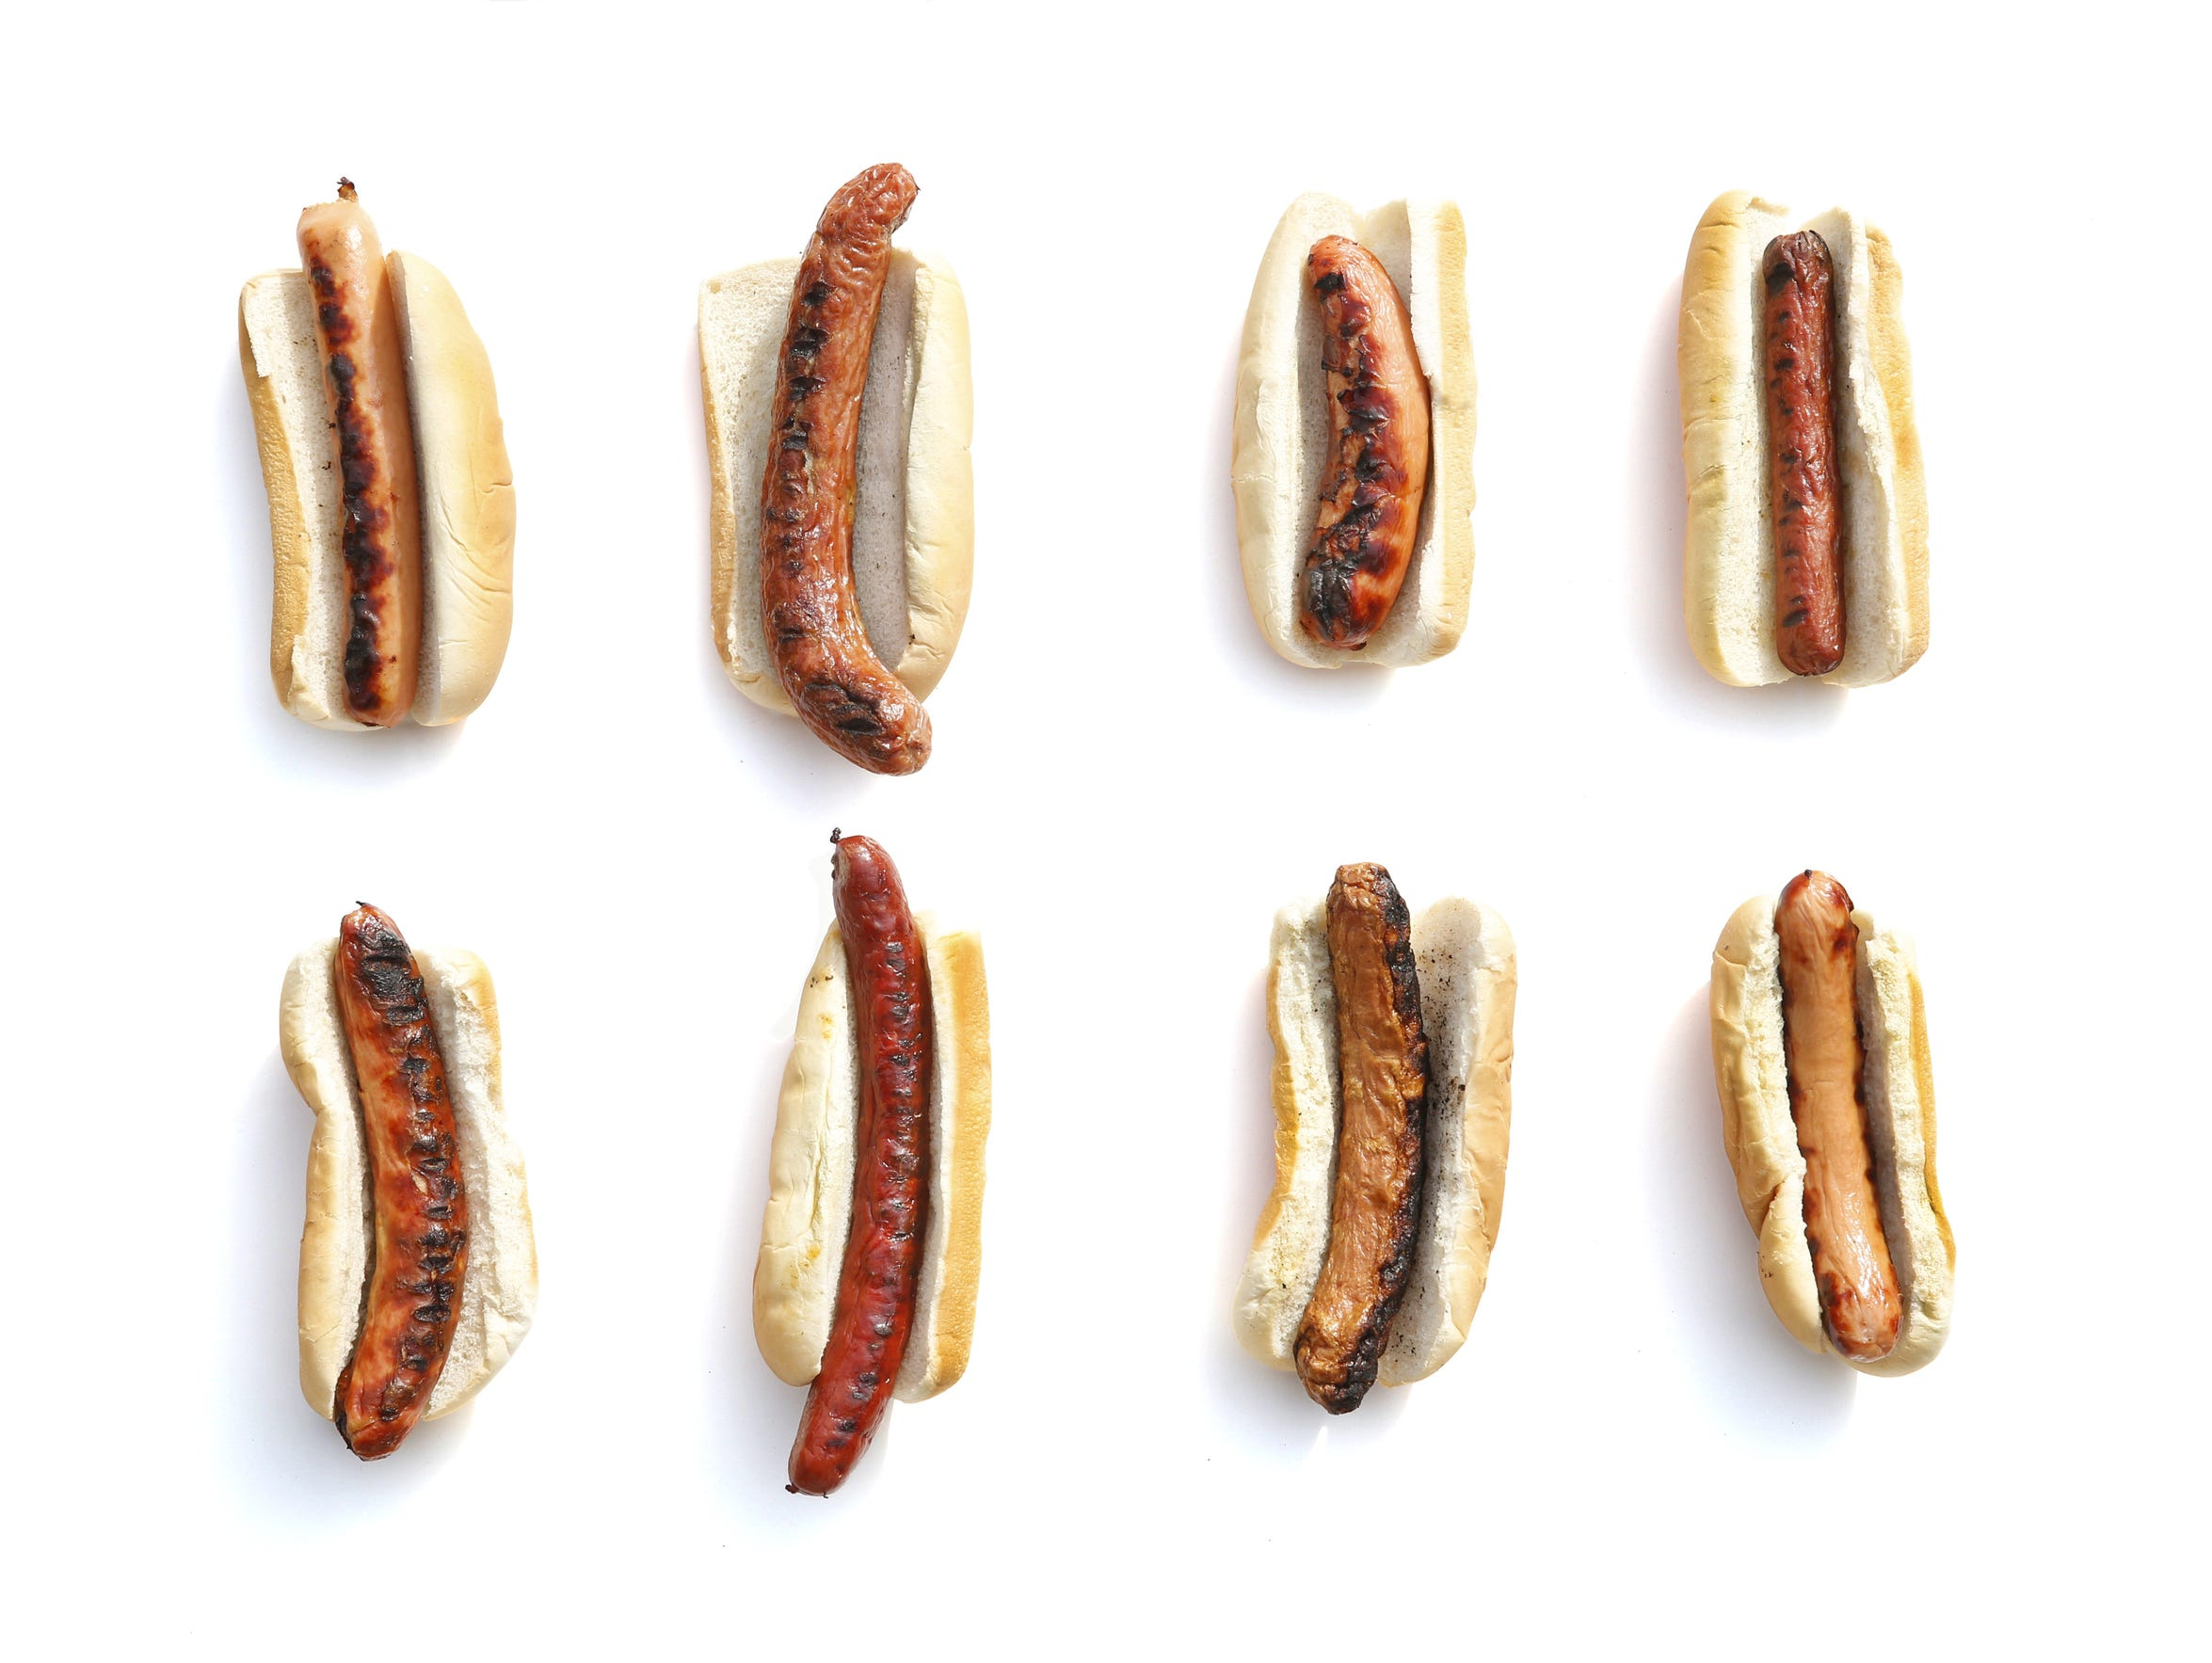 Our judges tasted eight hot dogs. First row: Sahlen's,